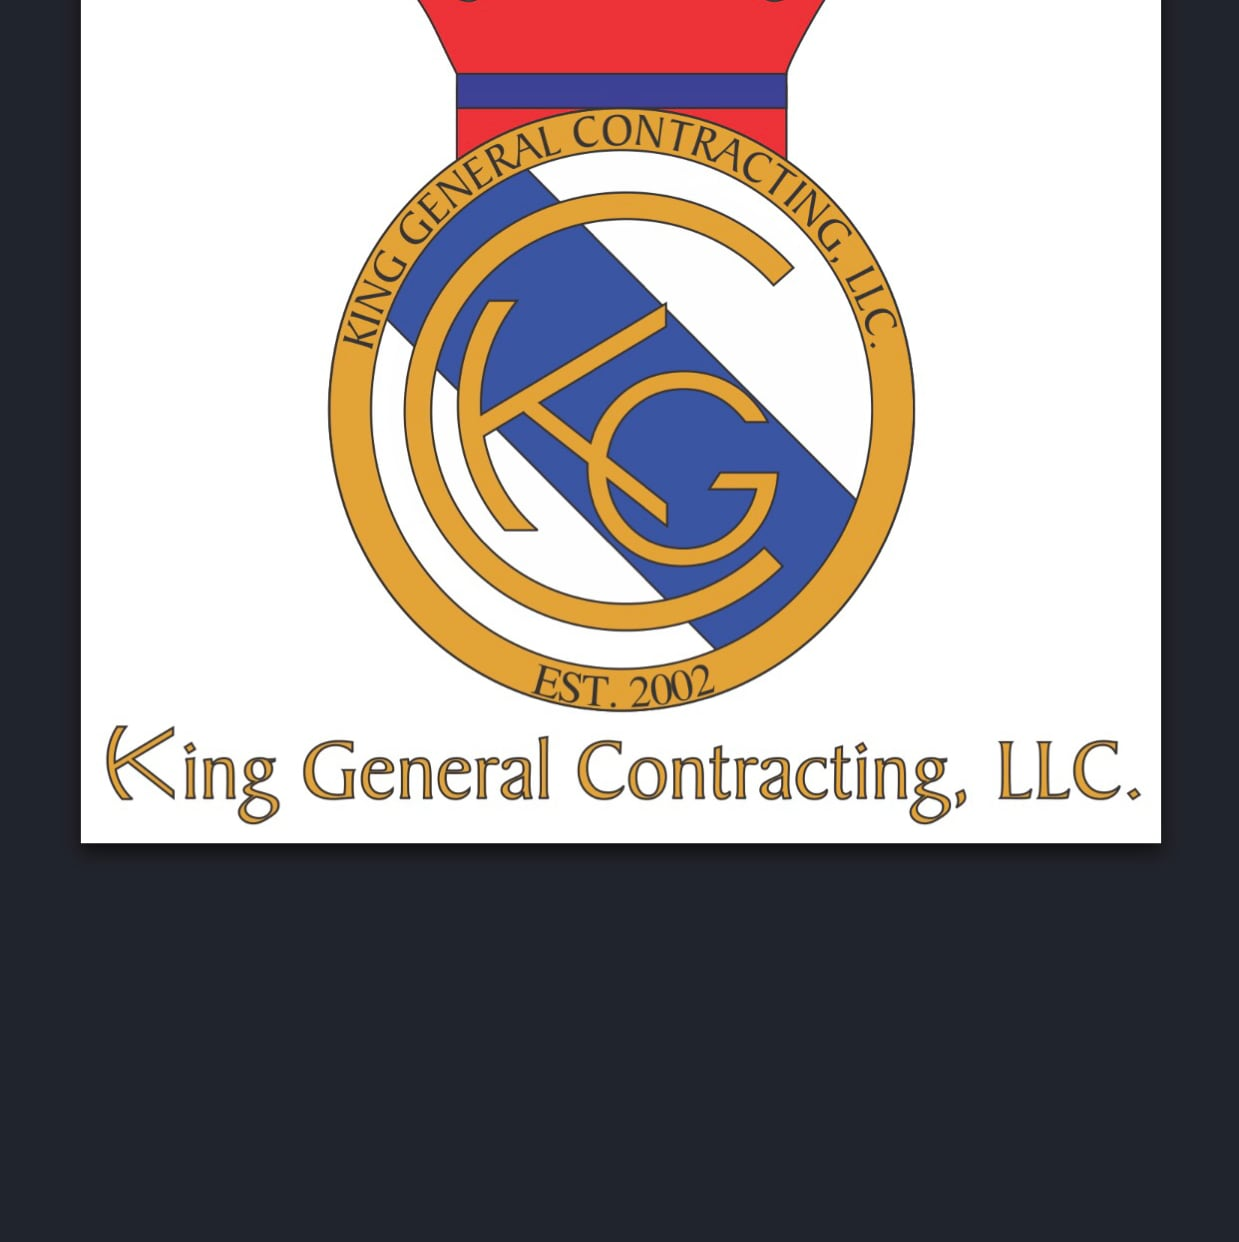 King General Contracting